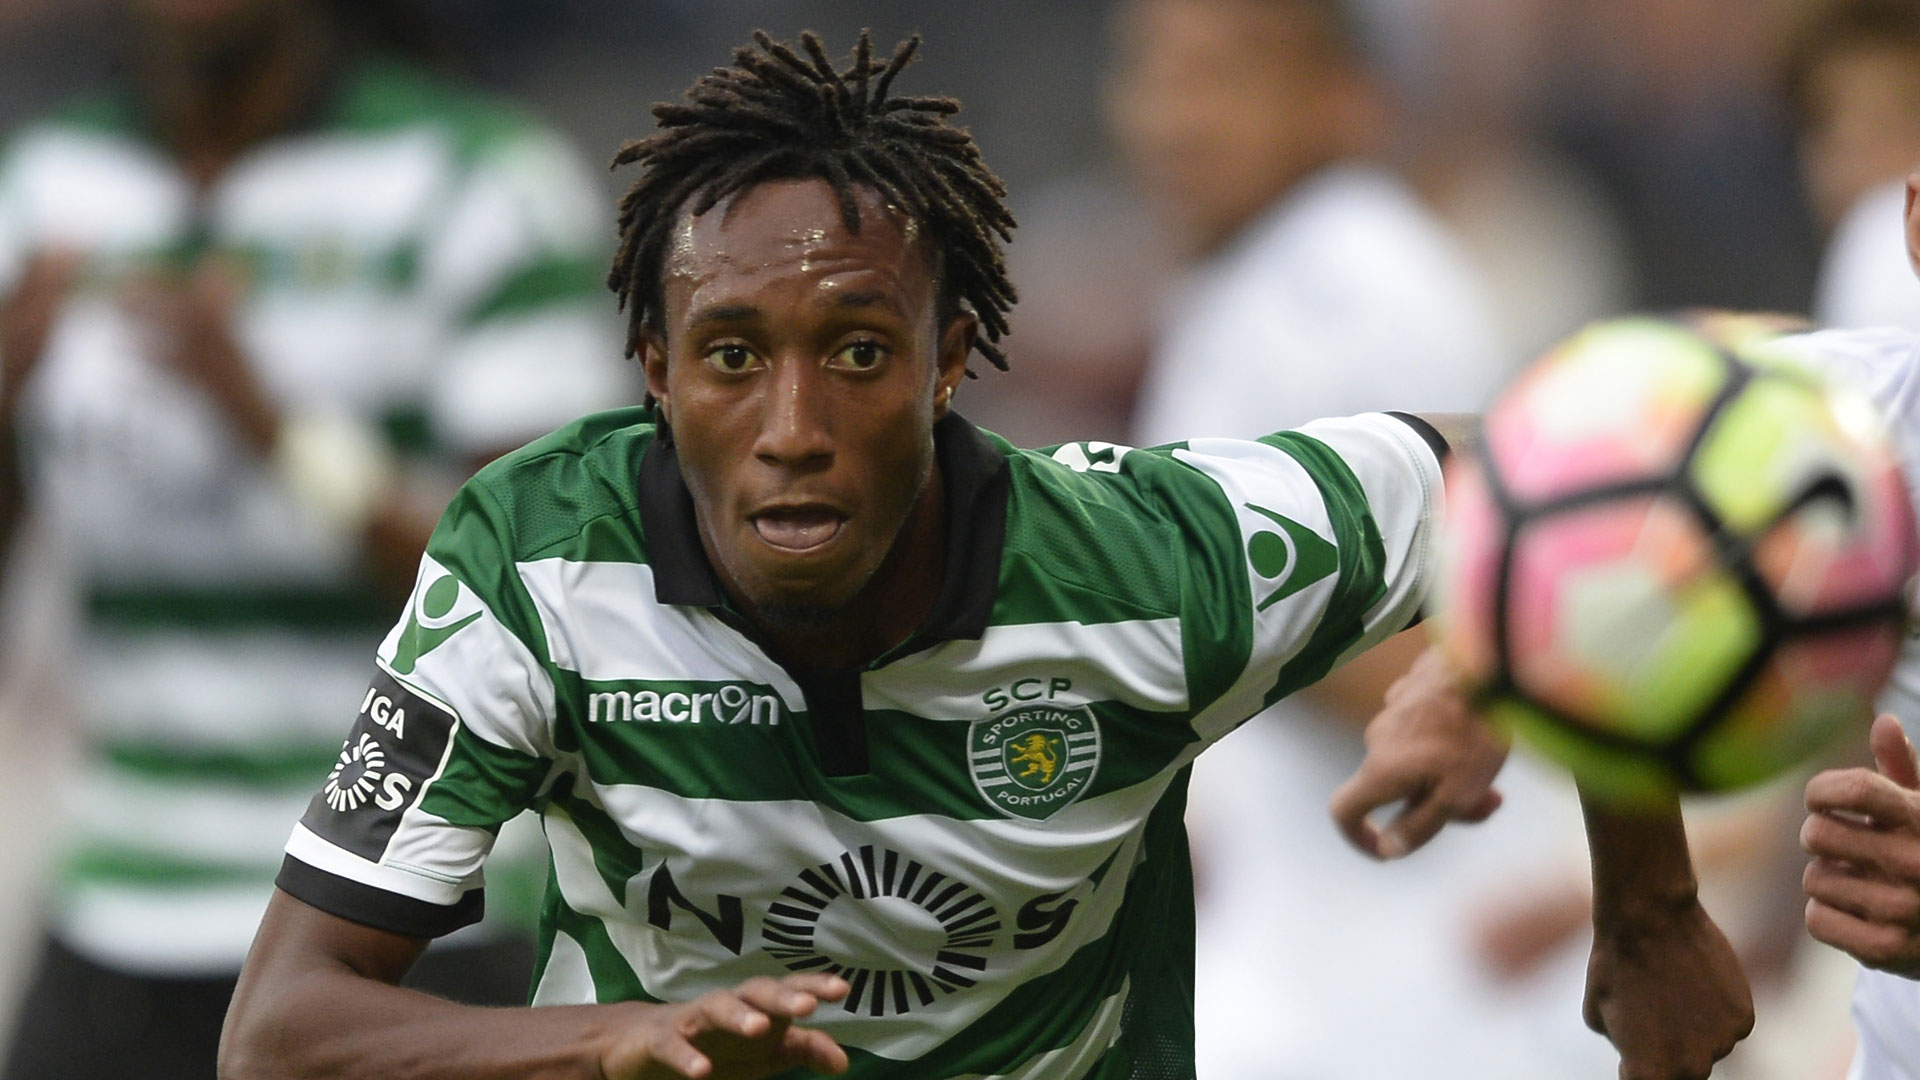 http://images.performgroup.com/di/library/goal_de/47/d9/gelson-martins-10012016_1ng6f354t215z1u1oy4lcqmg3y.jpg